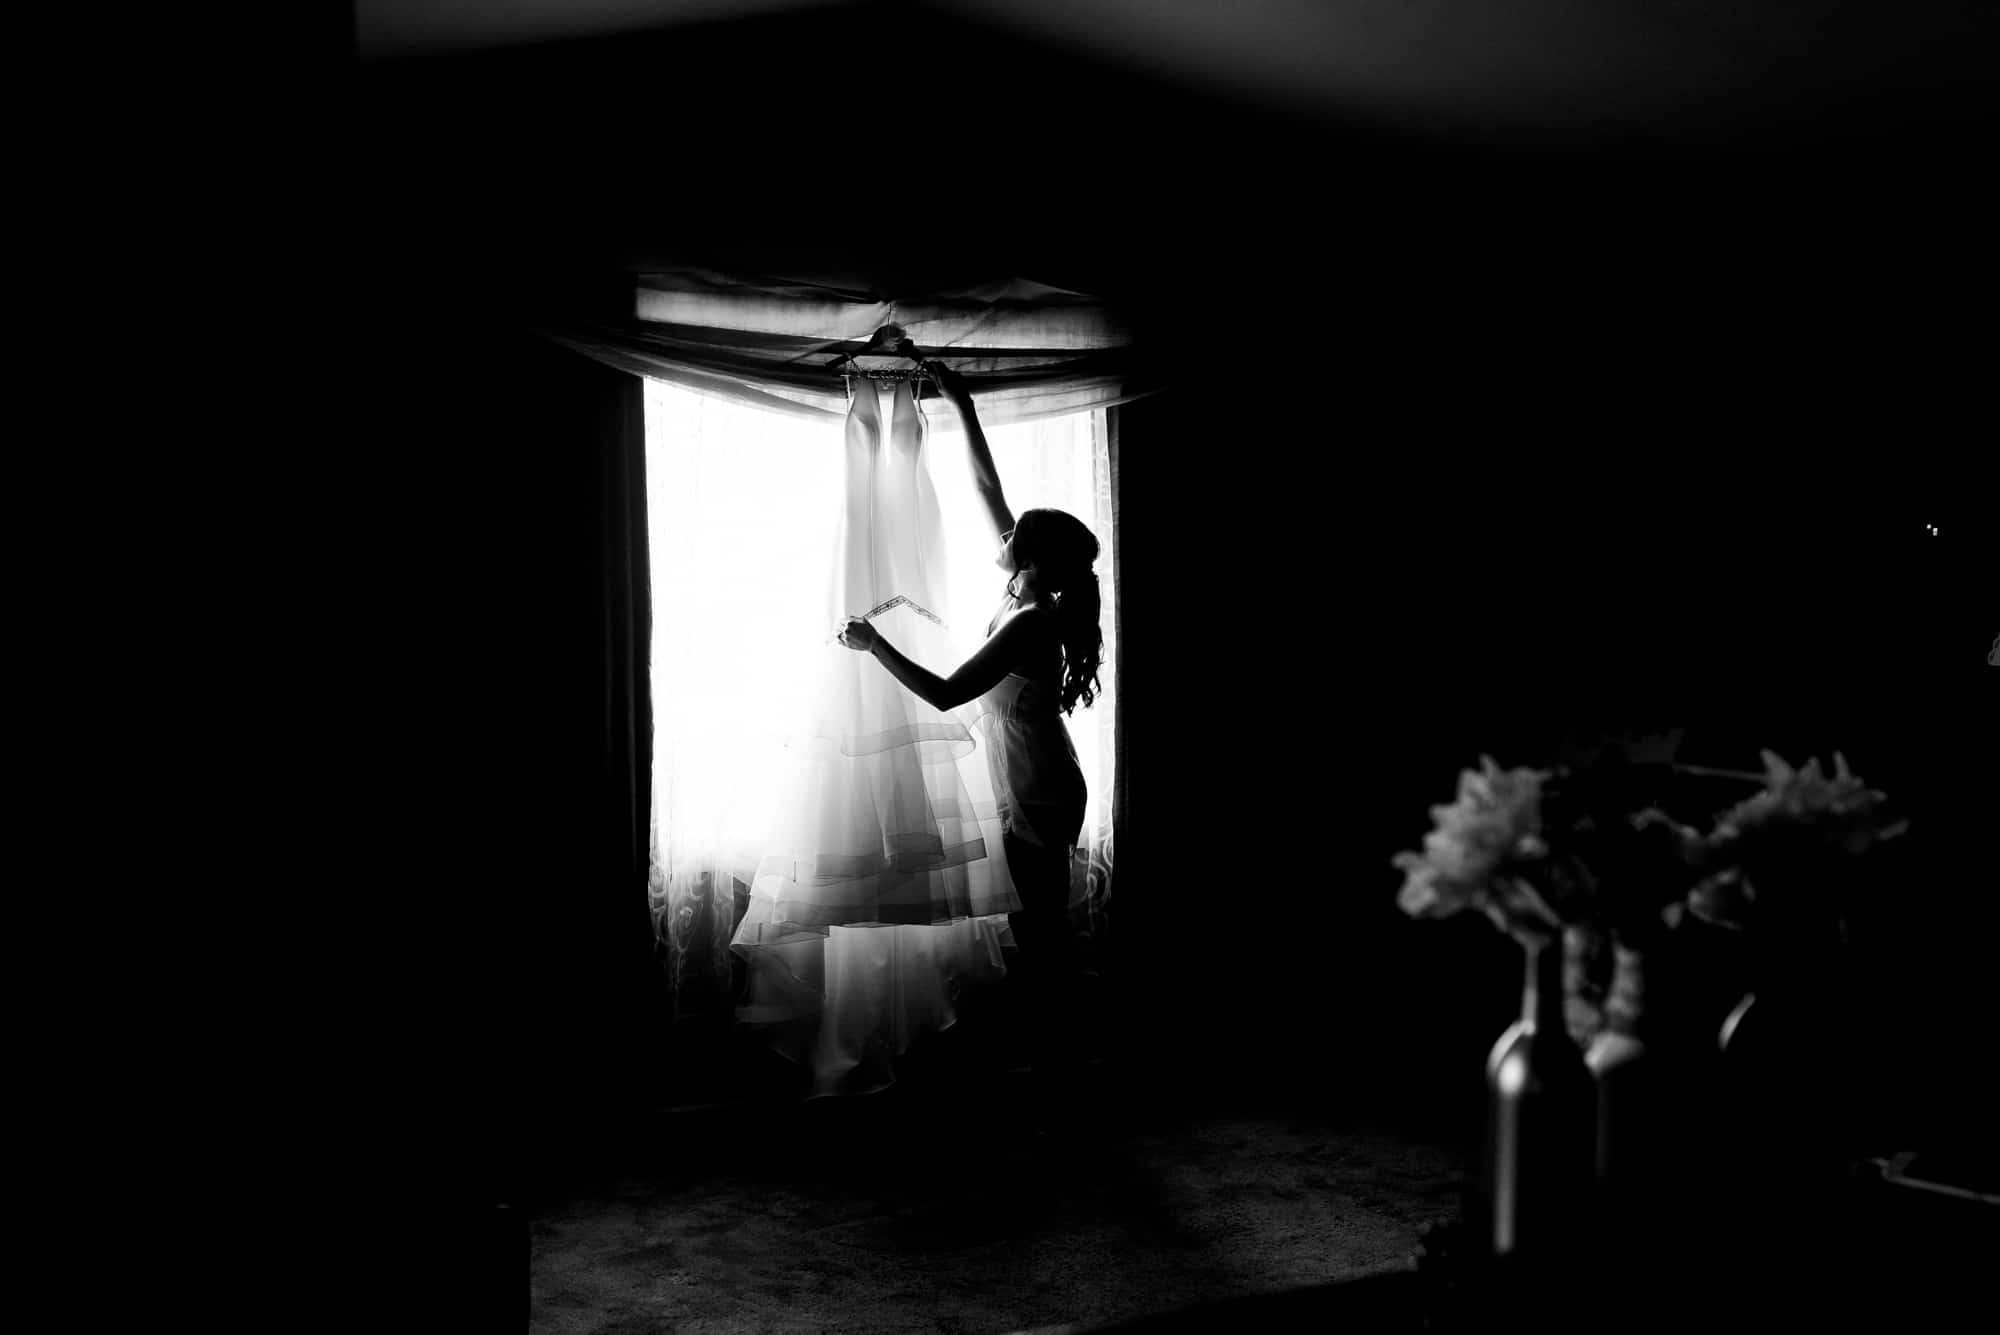 wedding morning, silhouette of bride handing gown in window